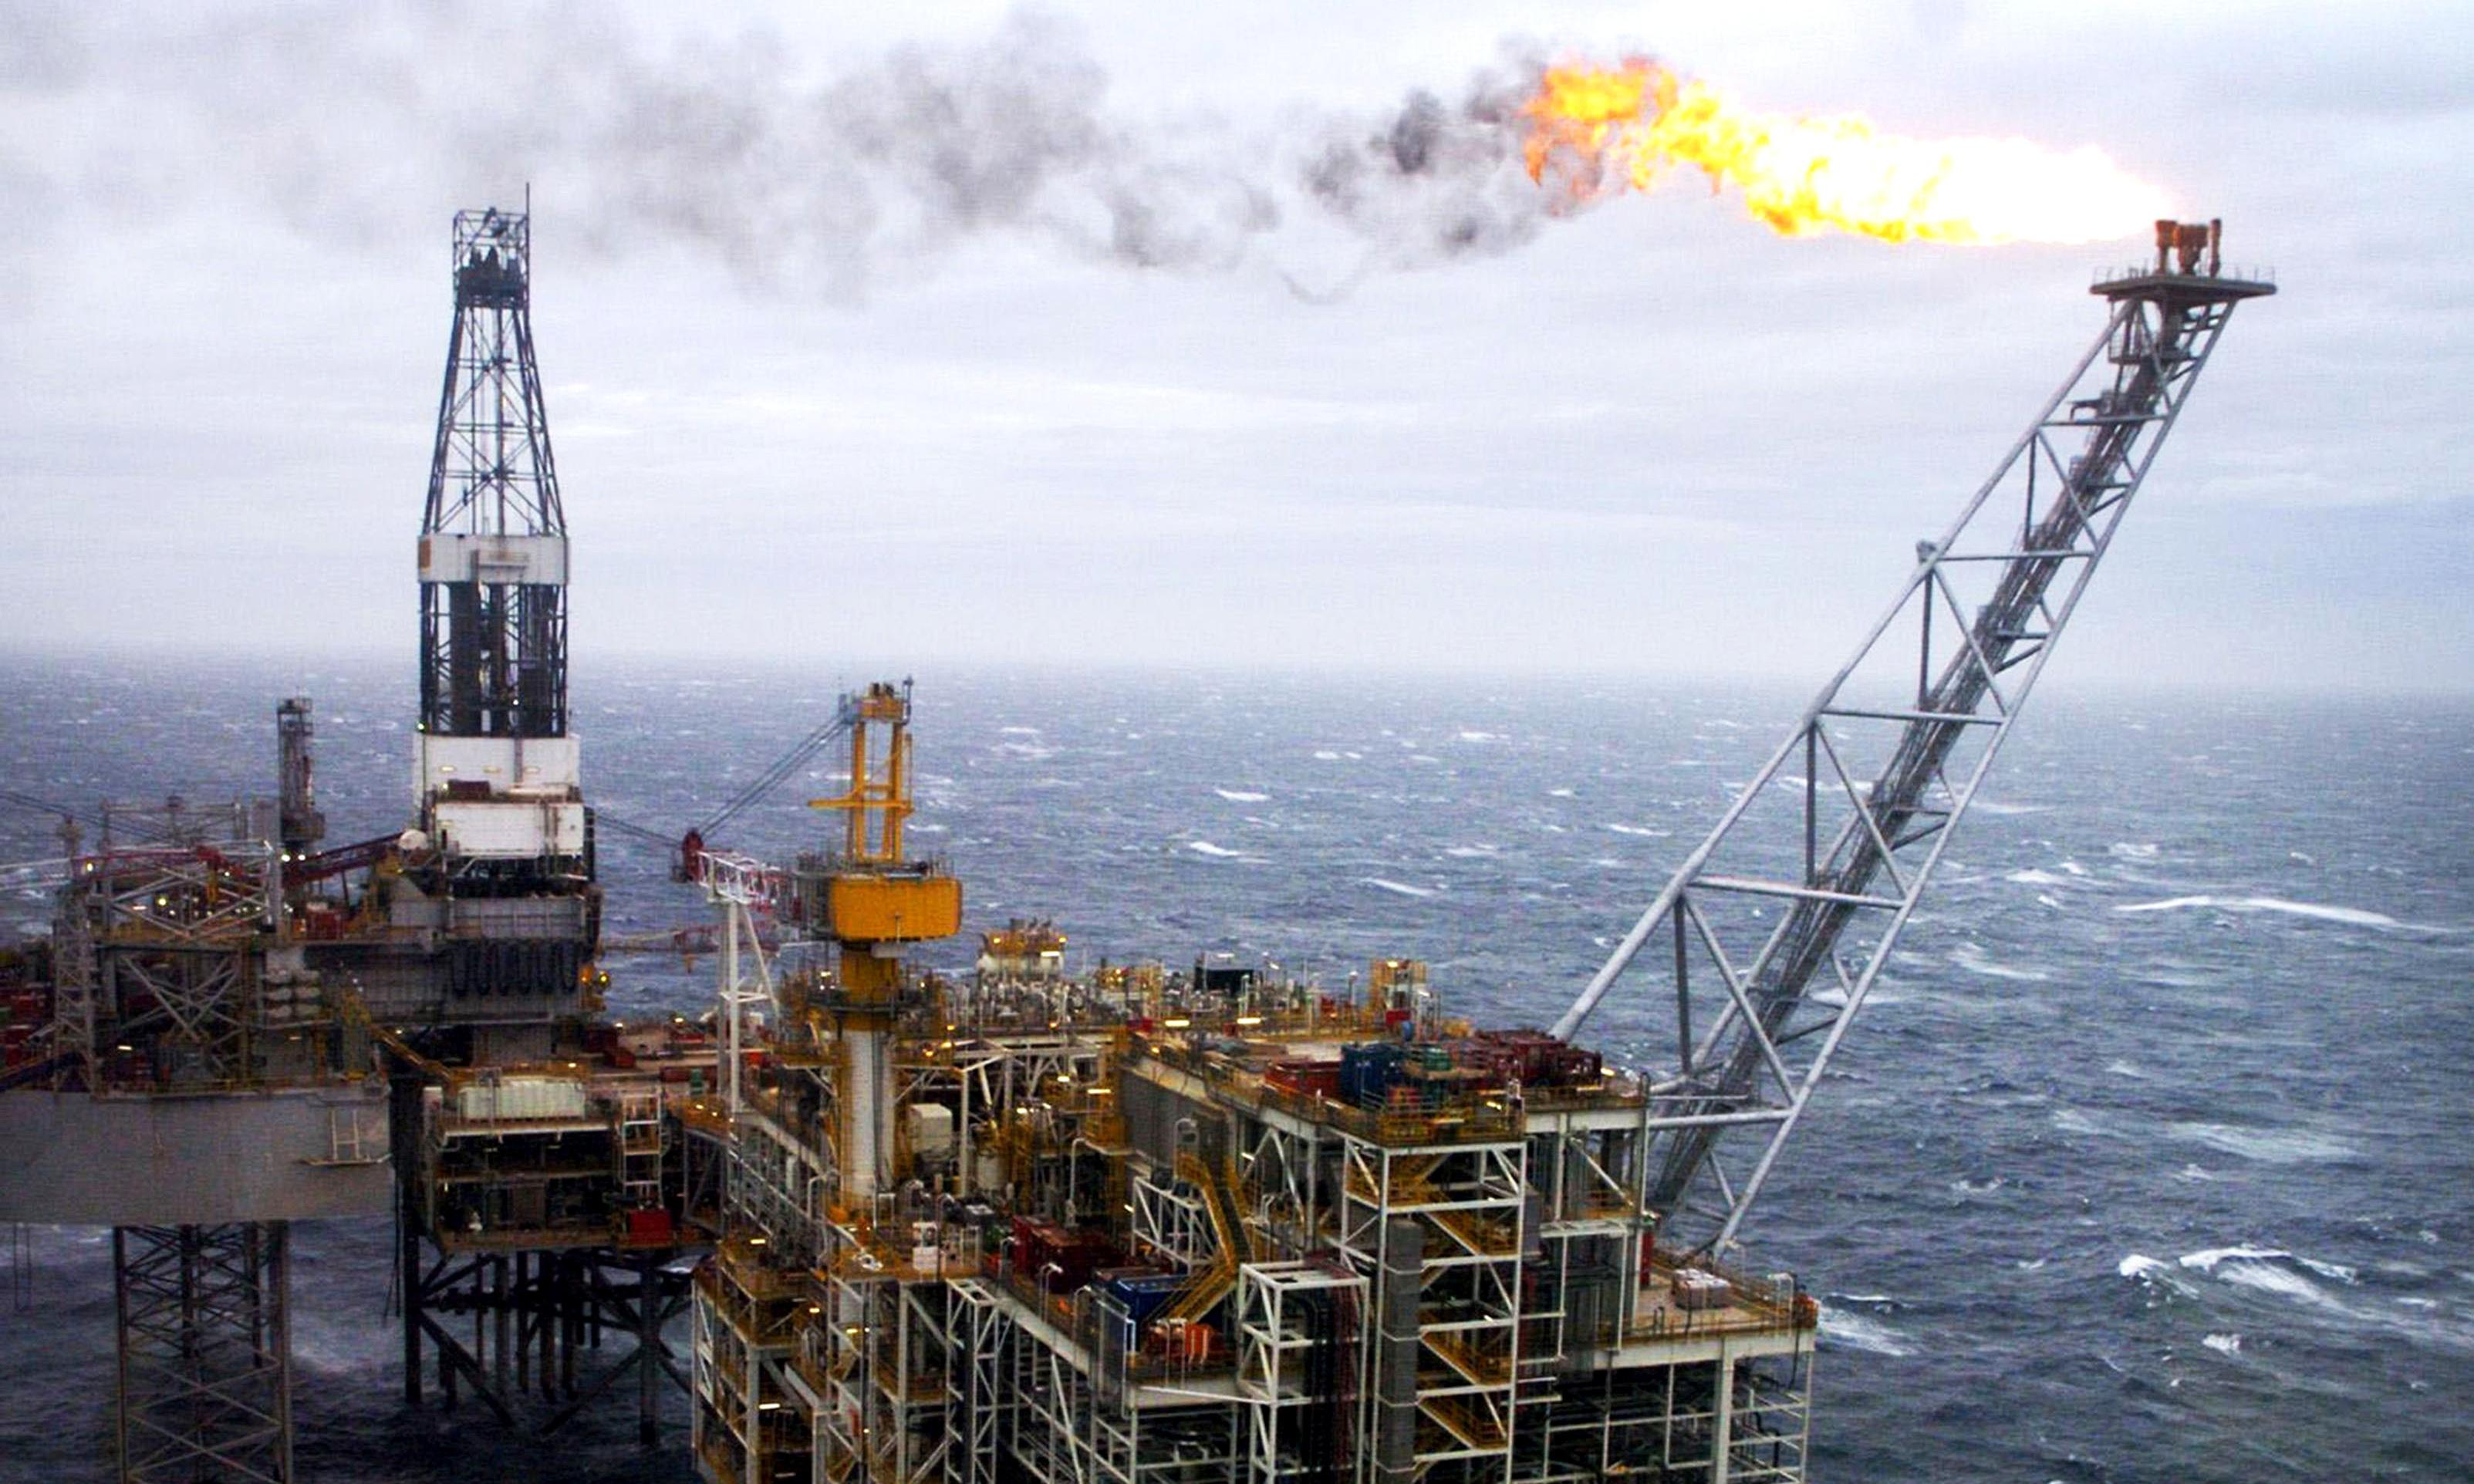 North Sea oilfields could help contain climate change, says report